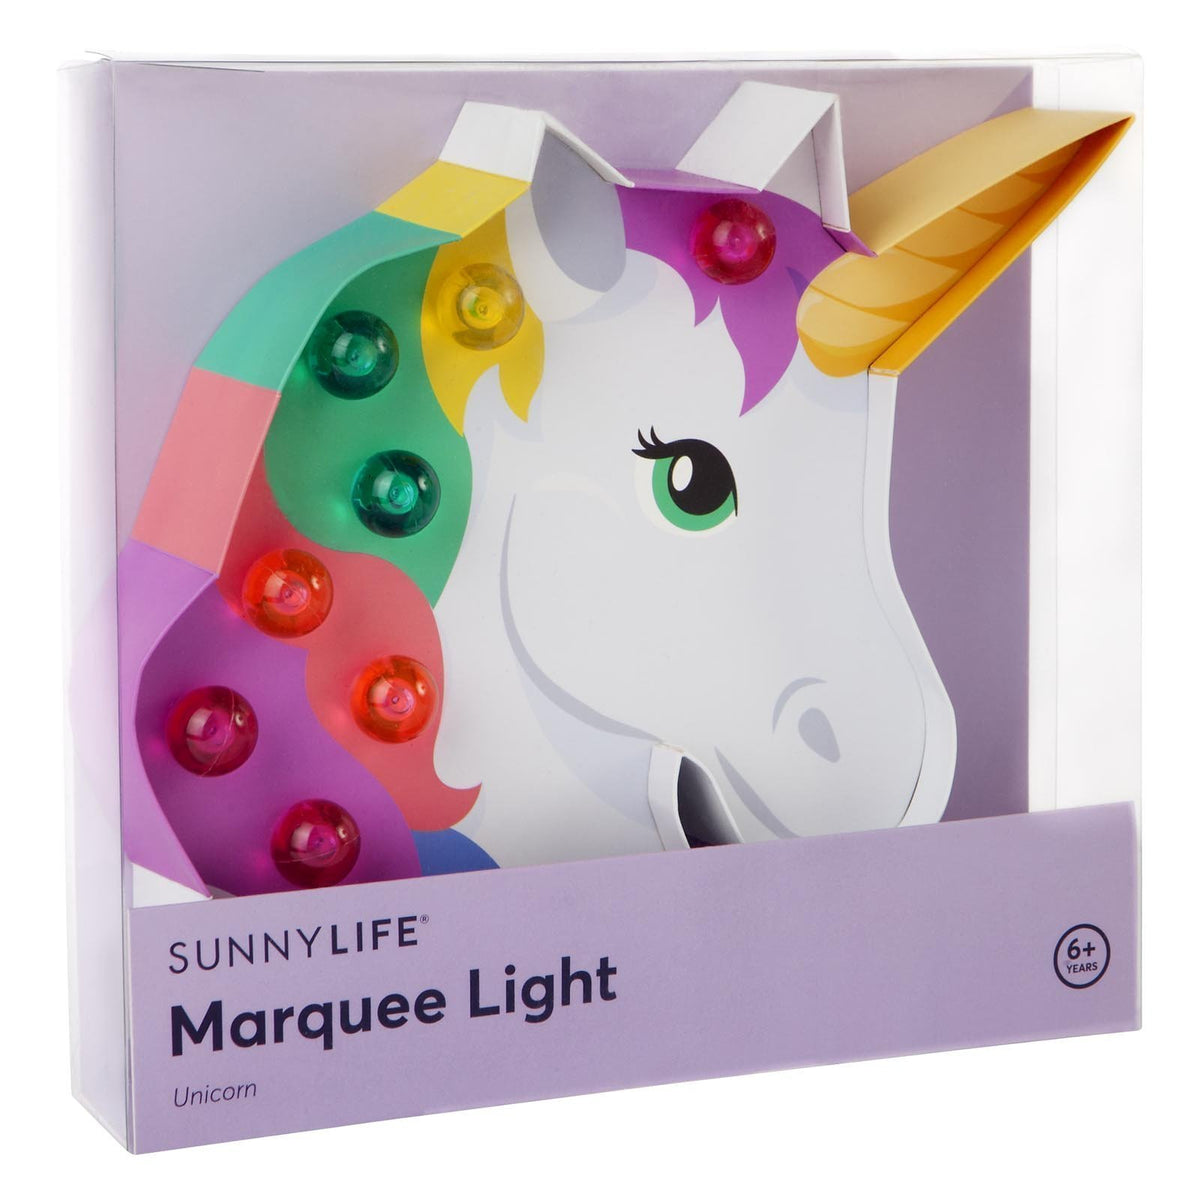 Sunnylife | Marquee Light | Unicorn